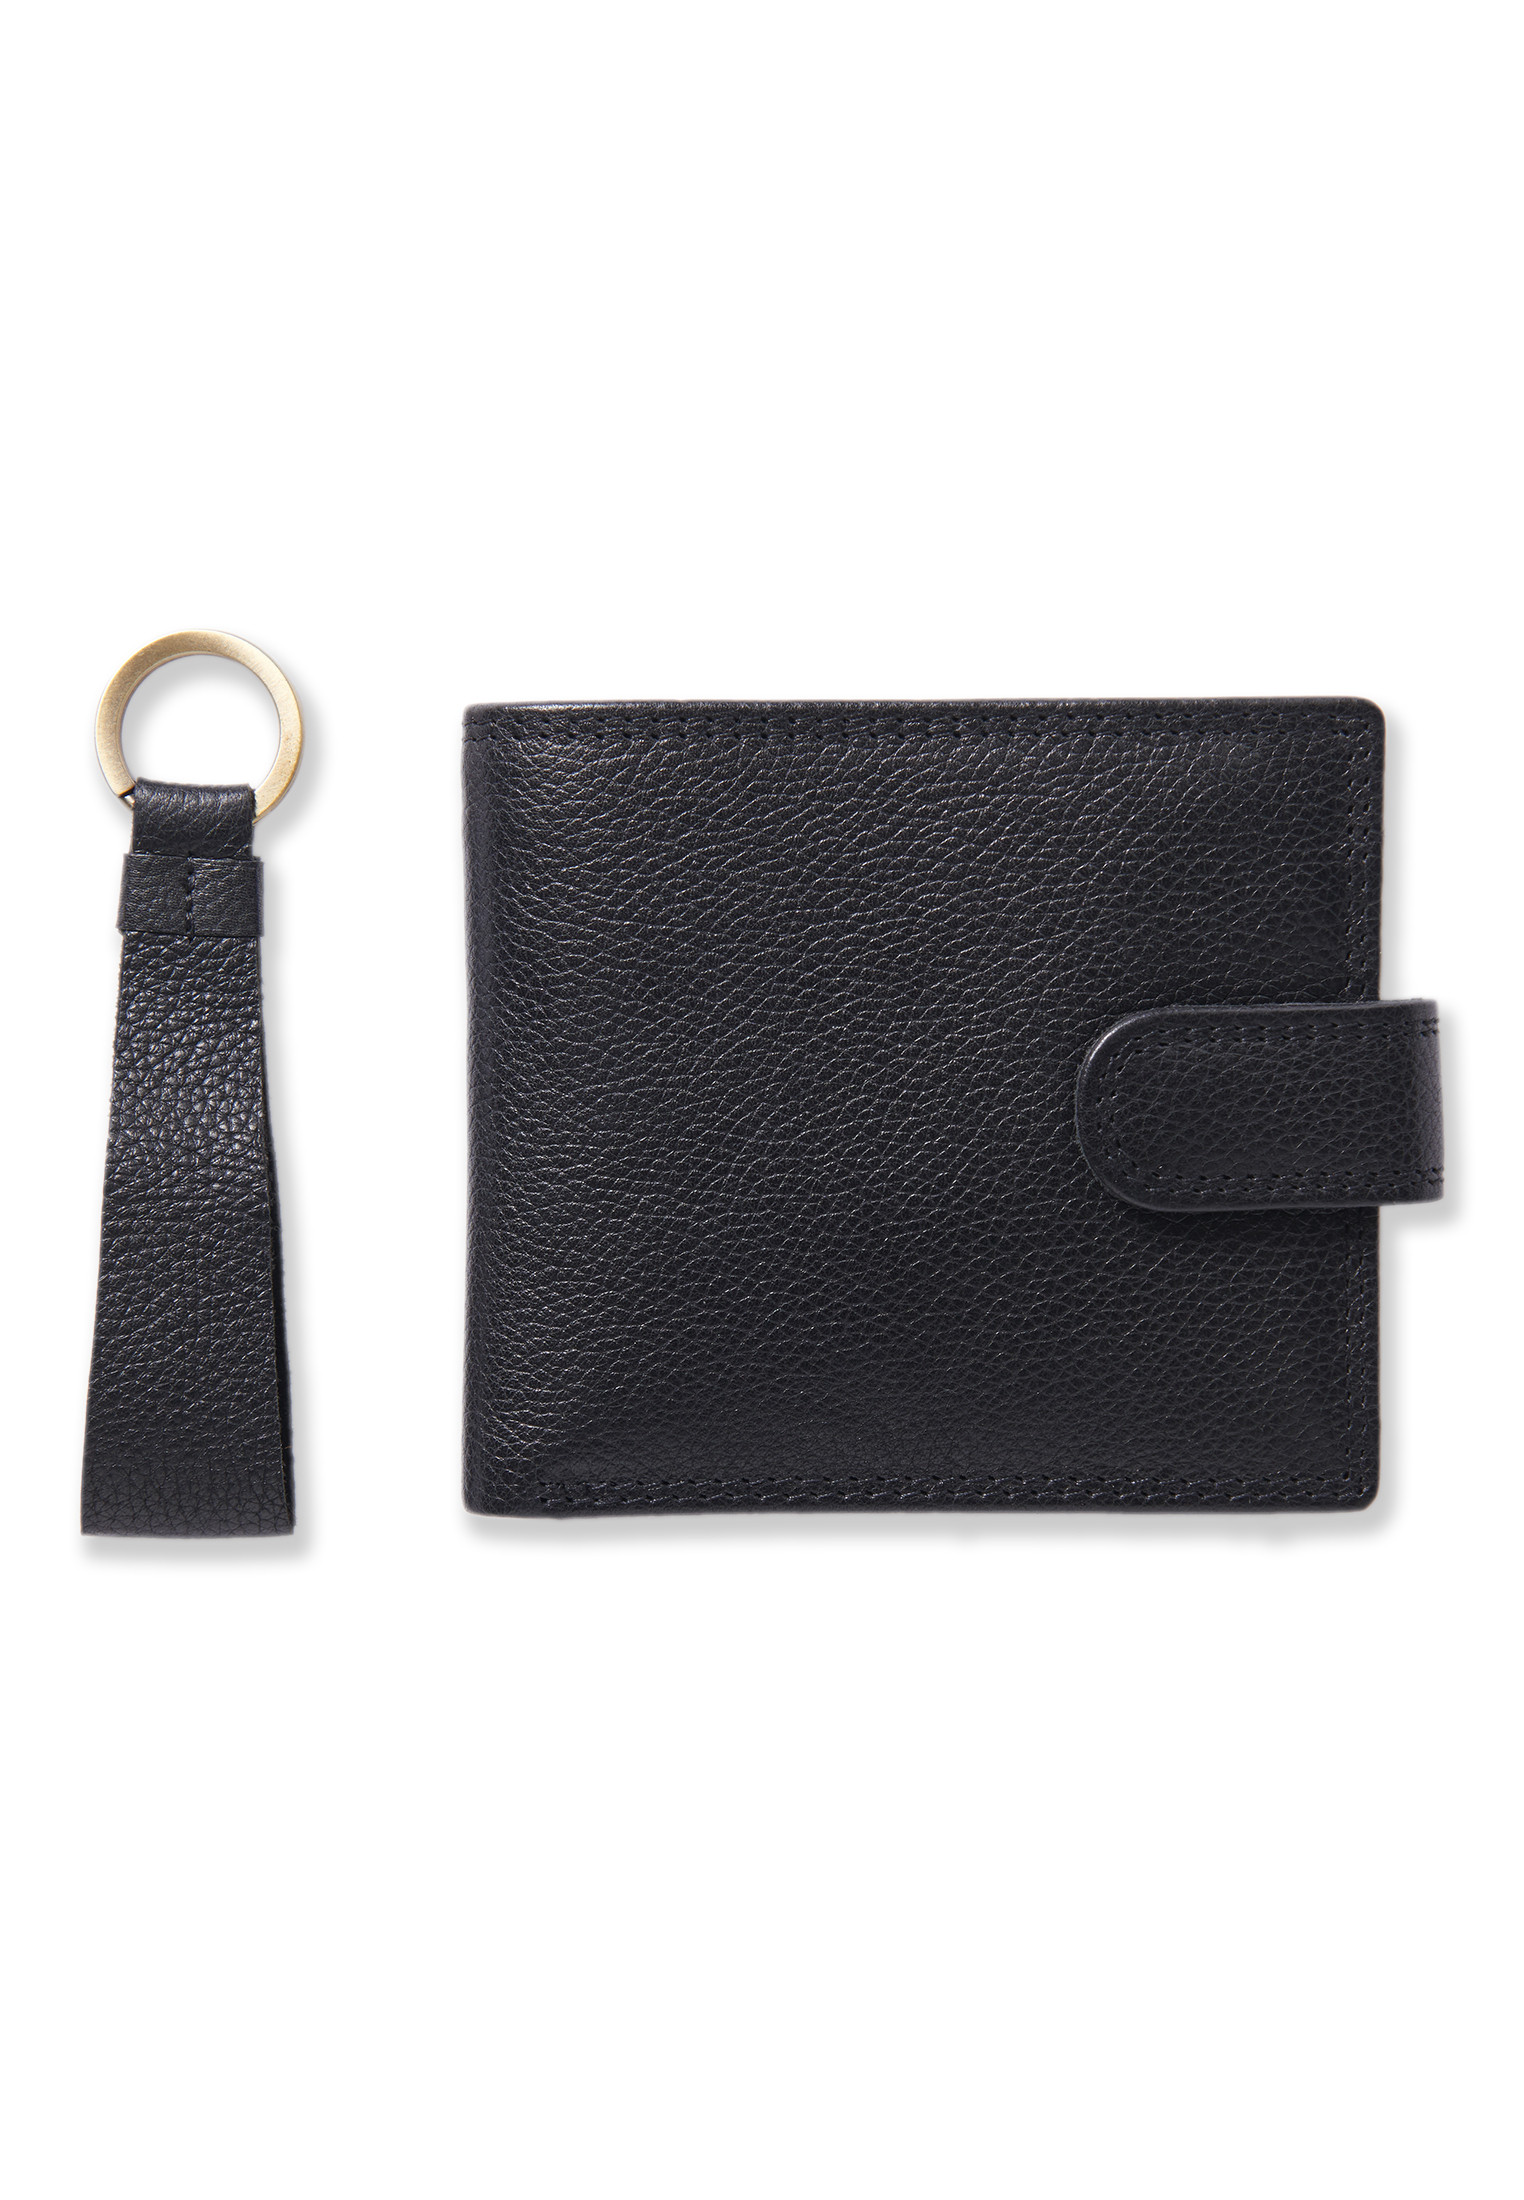 Black Leather RFID Wallet and Key Ring Set